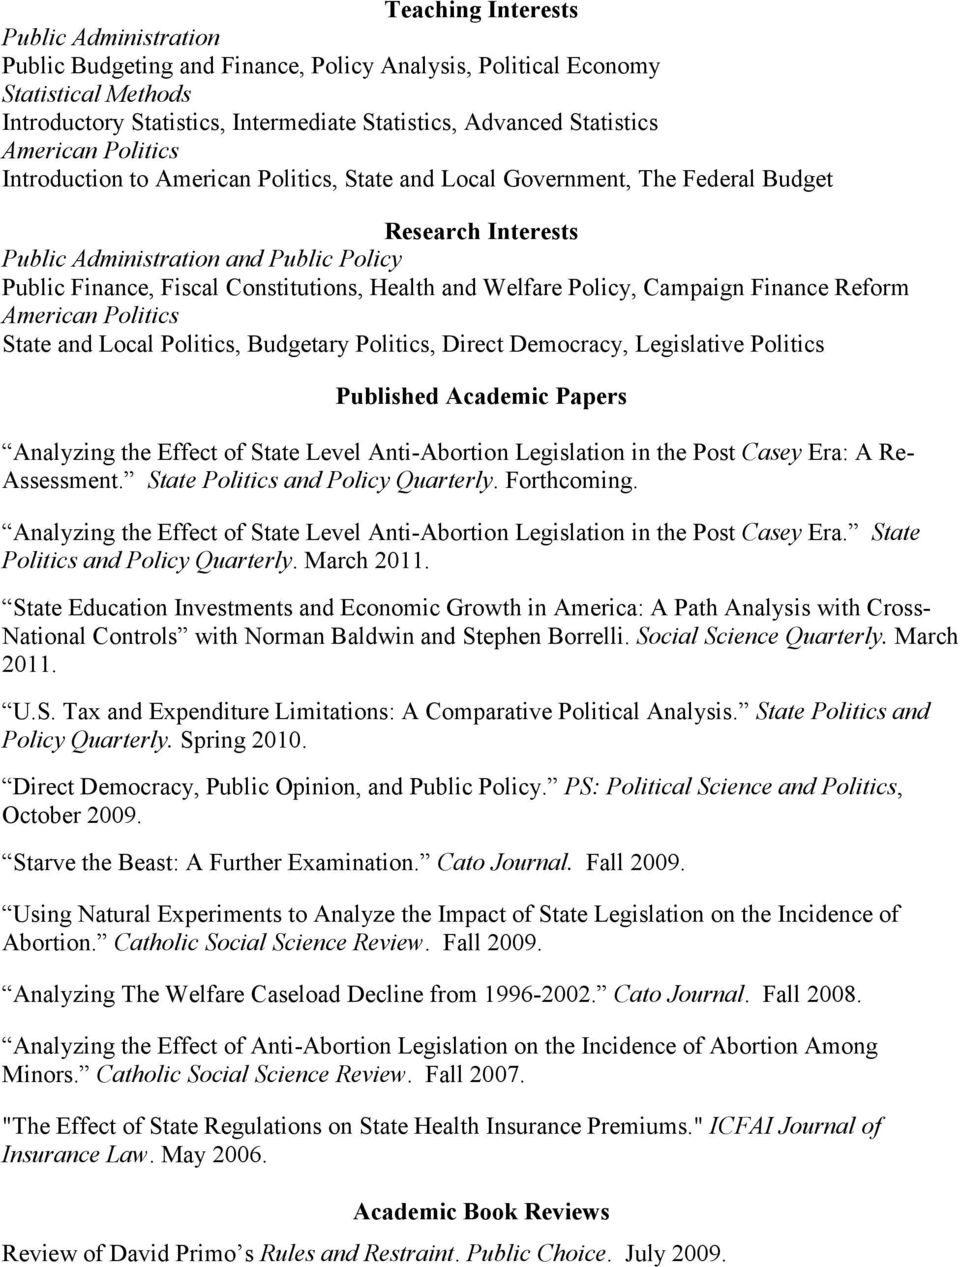 Health and Welfare Policy, Campaign Finance Reform American Politics State and Local Politics, Budgetary Politics, Direct Democracy, Legislative Politics Published Academic Papers Analyzing the